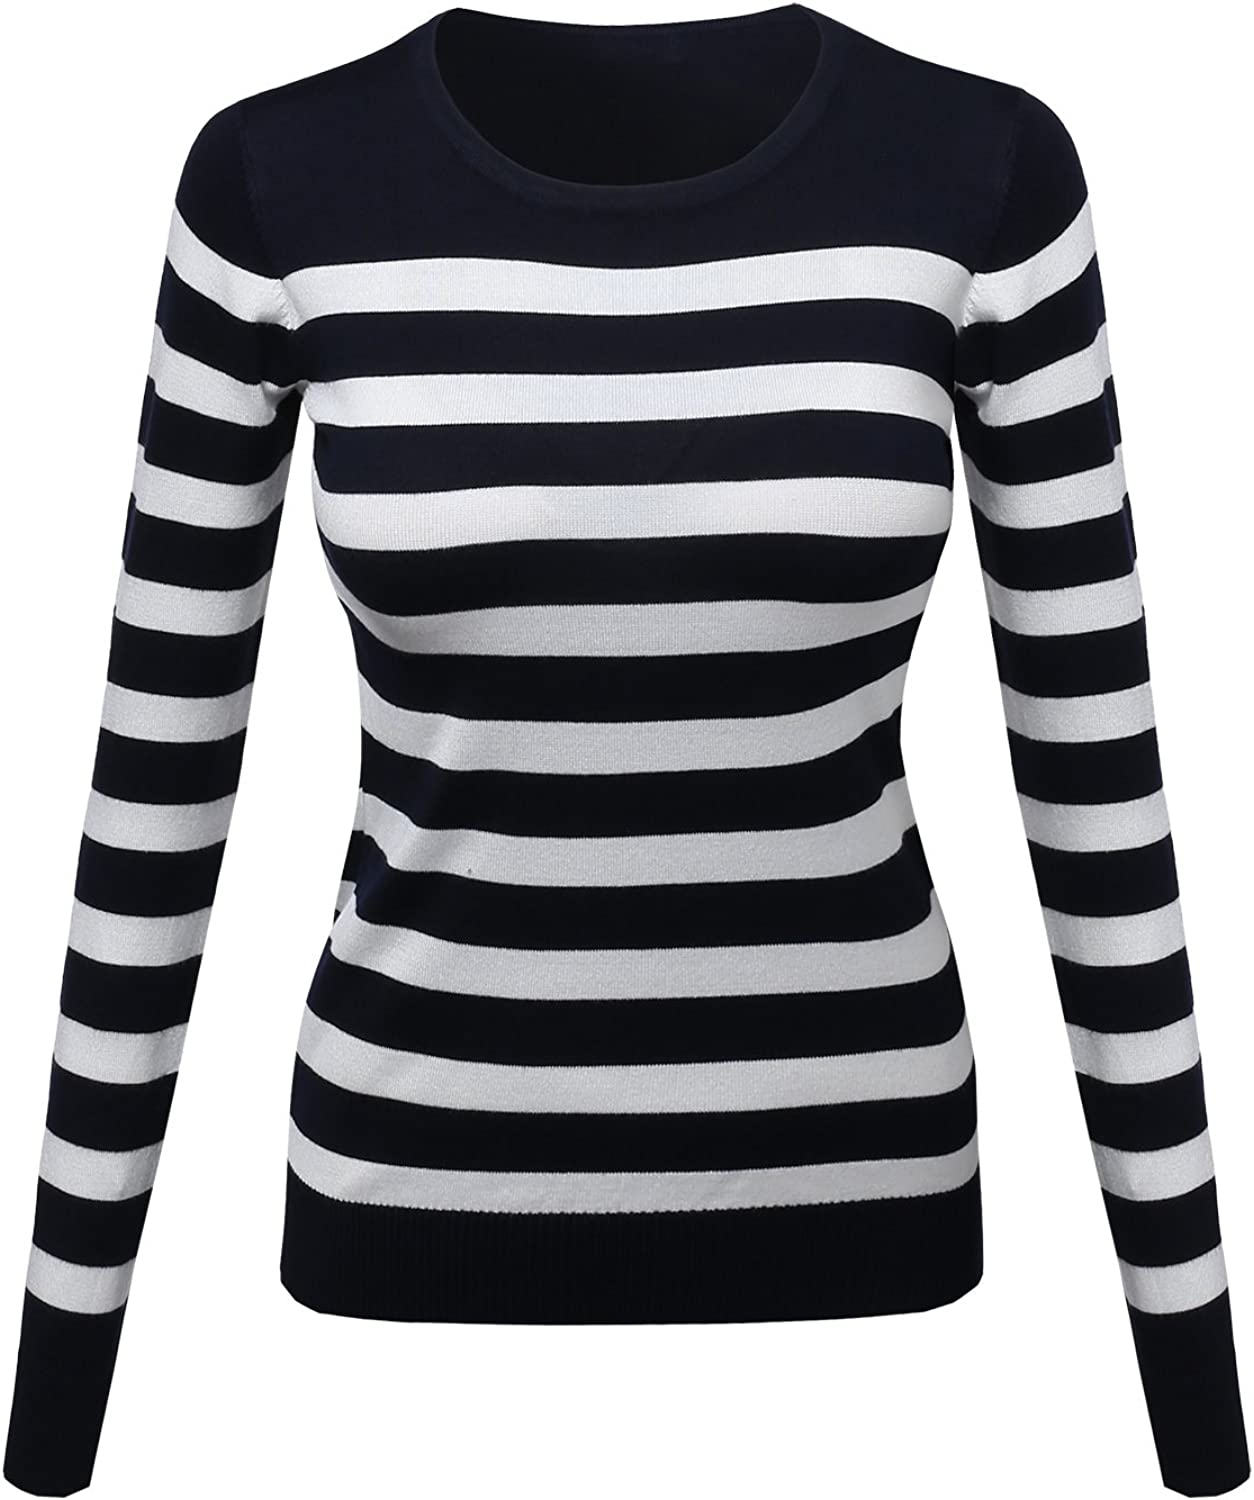 Awesome21 Women's Comtemporary Textured Bold Stripe Sweater